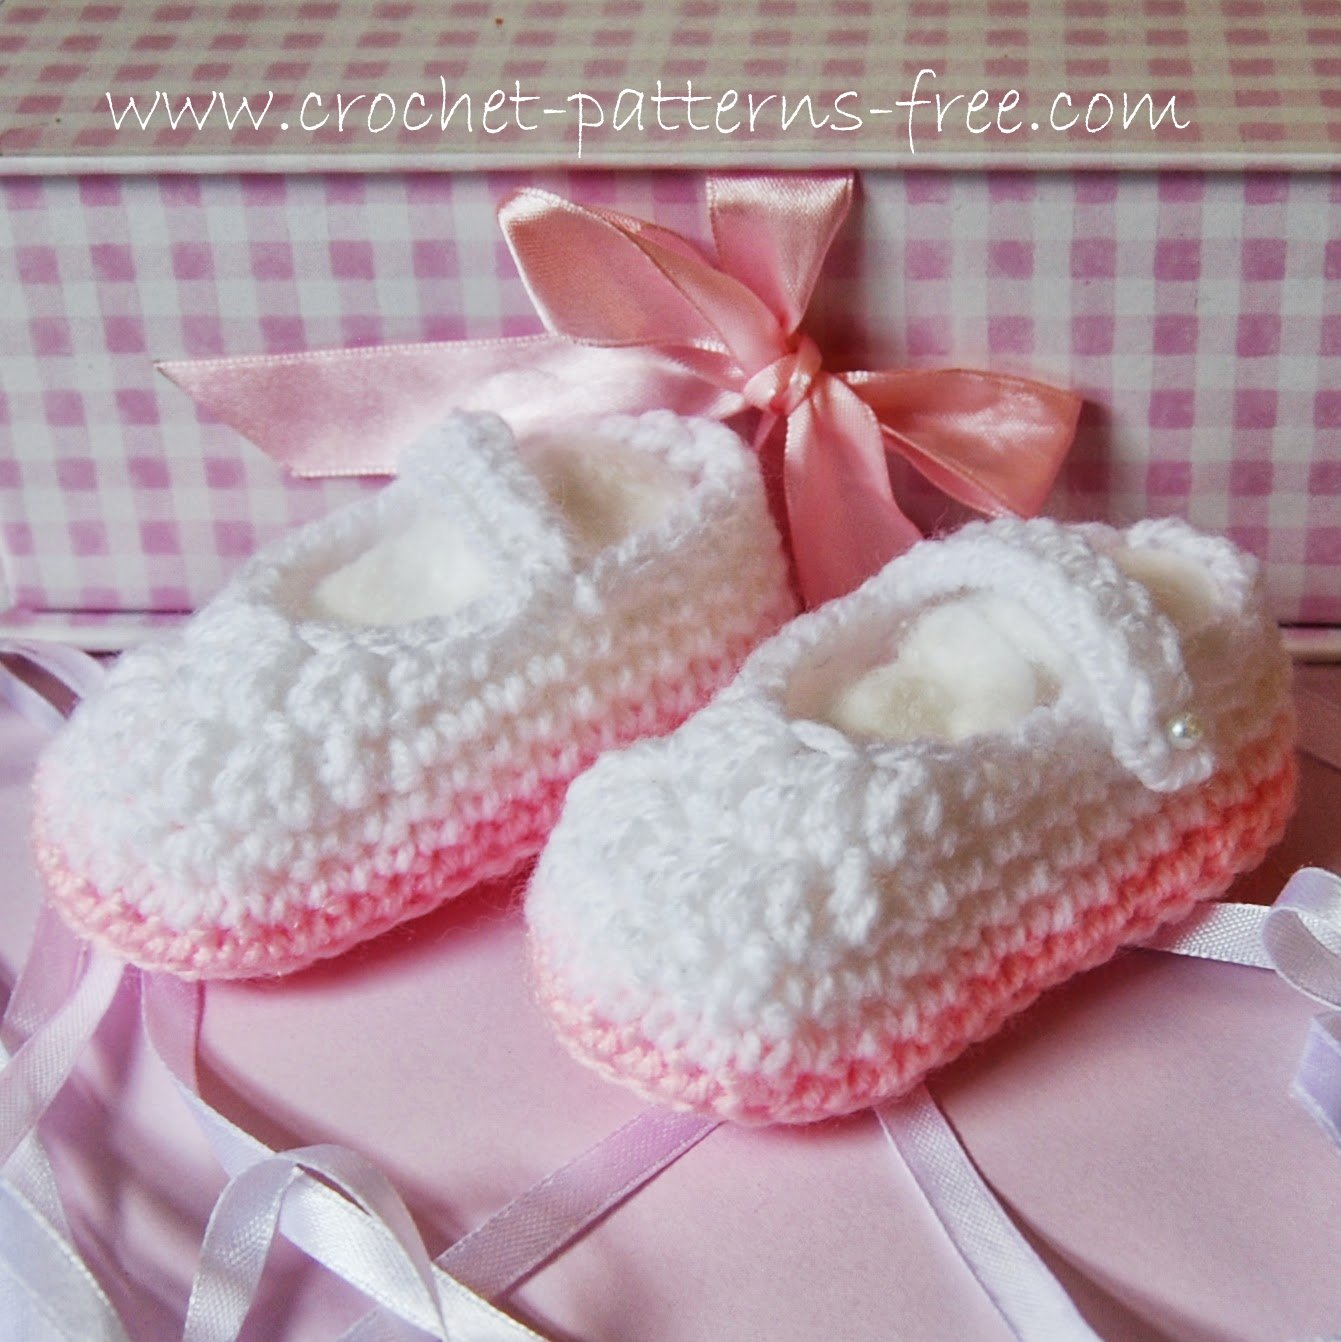 Baby Bootie Shoes Crochet Patterns Free Crochet Patterns for Baby ...